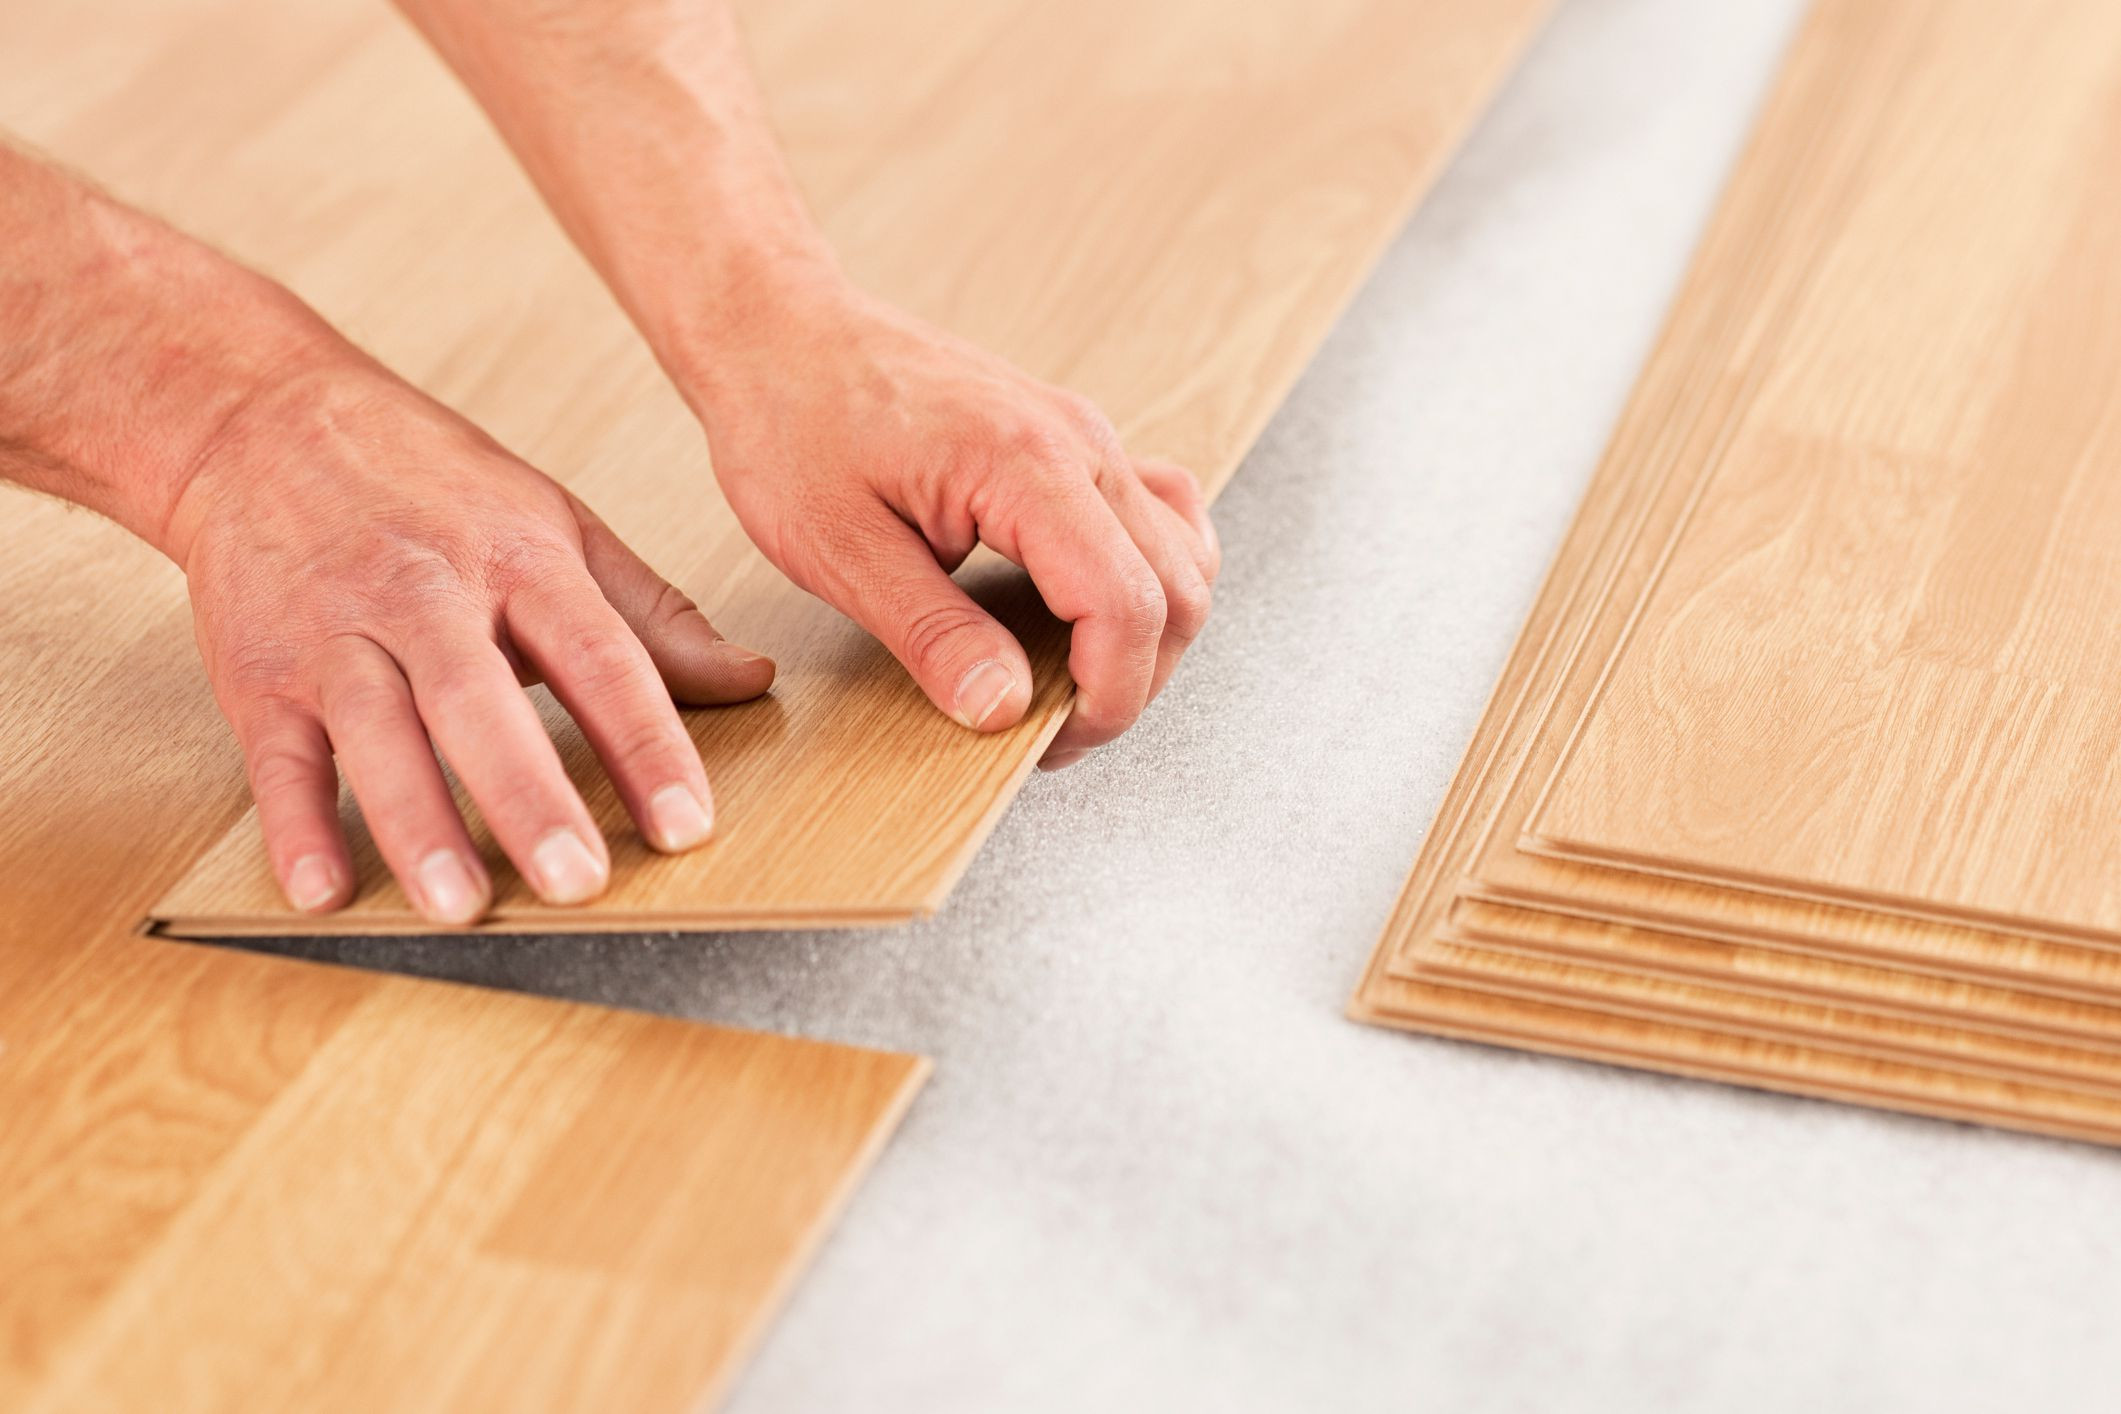 installing hardwood floors in existing kitchen of laminate underlayment pros and cons inside laminate floor install gettyimages 154961561 588816495f9b58bdb3da1a02